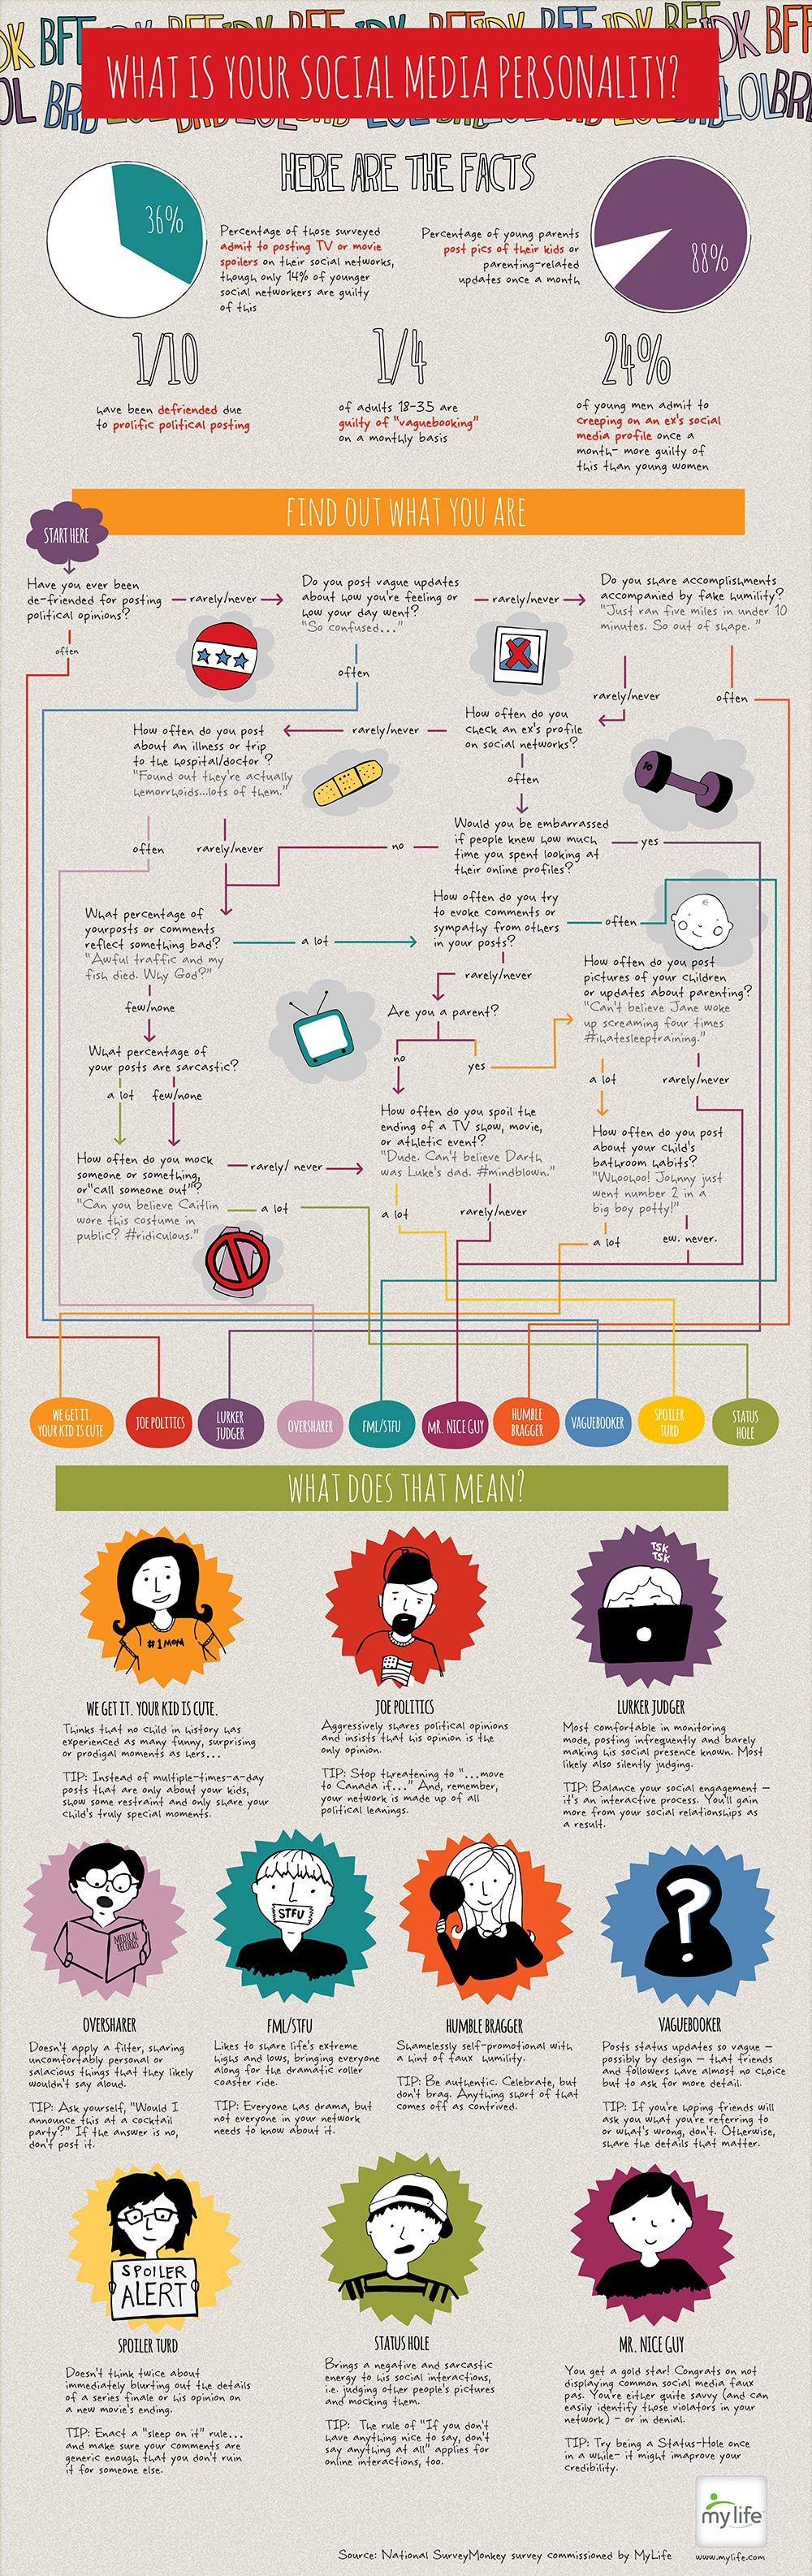 10 Social Networking Personalities: Which One Are You? [Infographic]